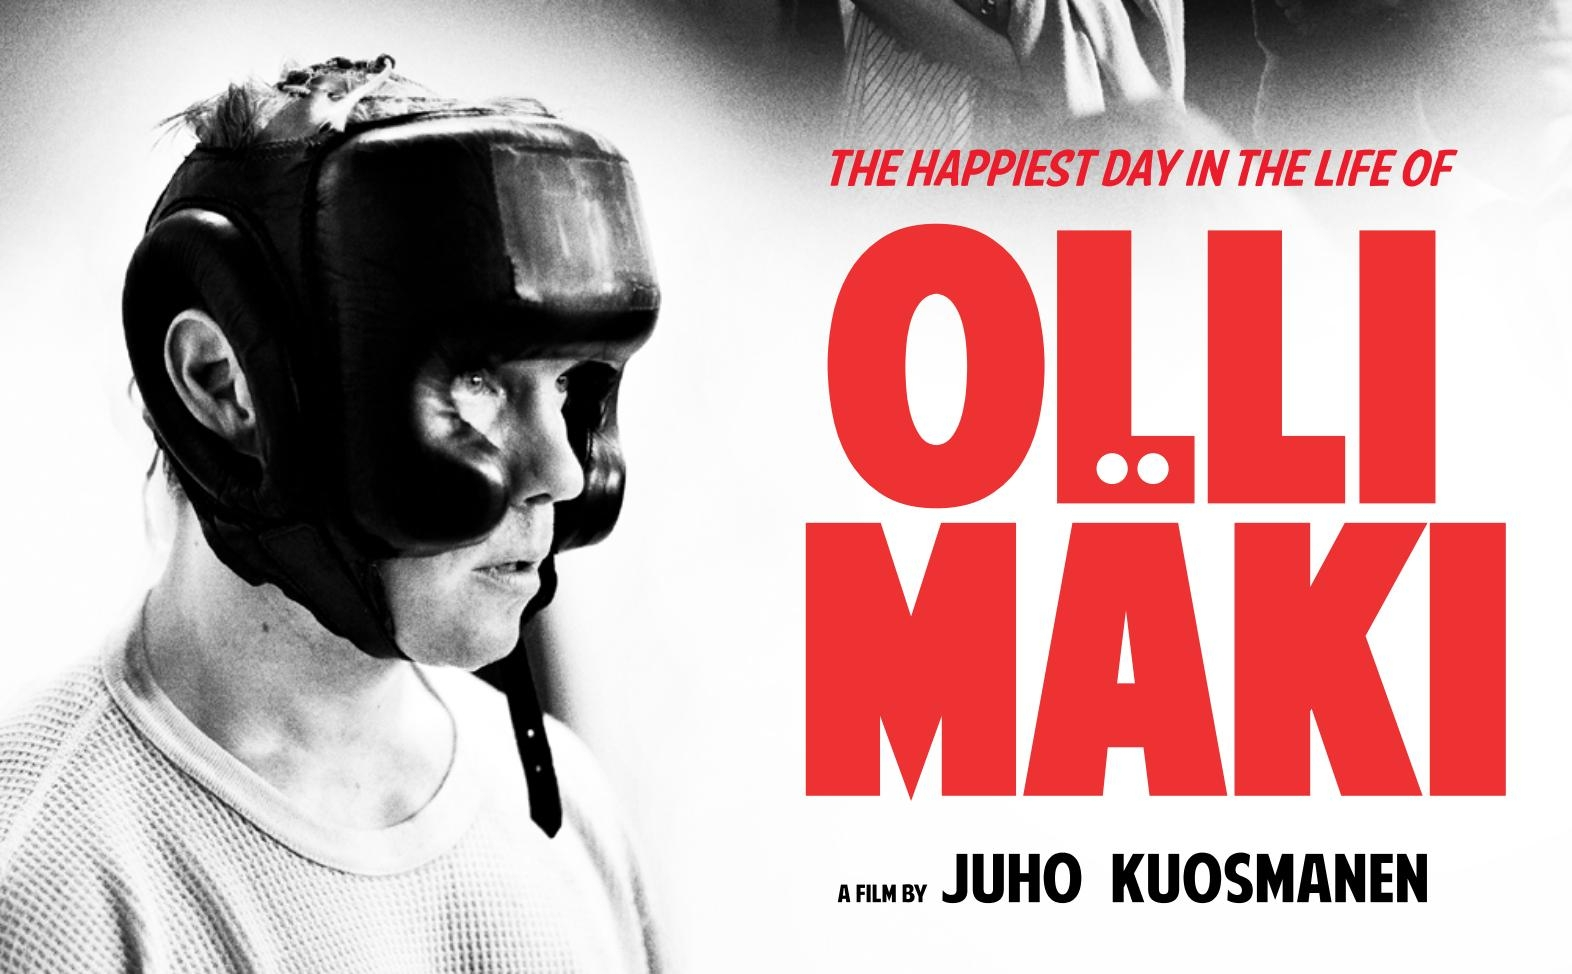 ஓல்லி The Happiest Day in the Life of Olli Mäki